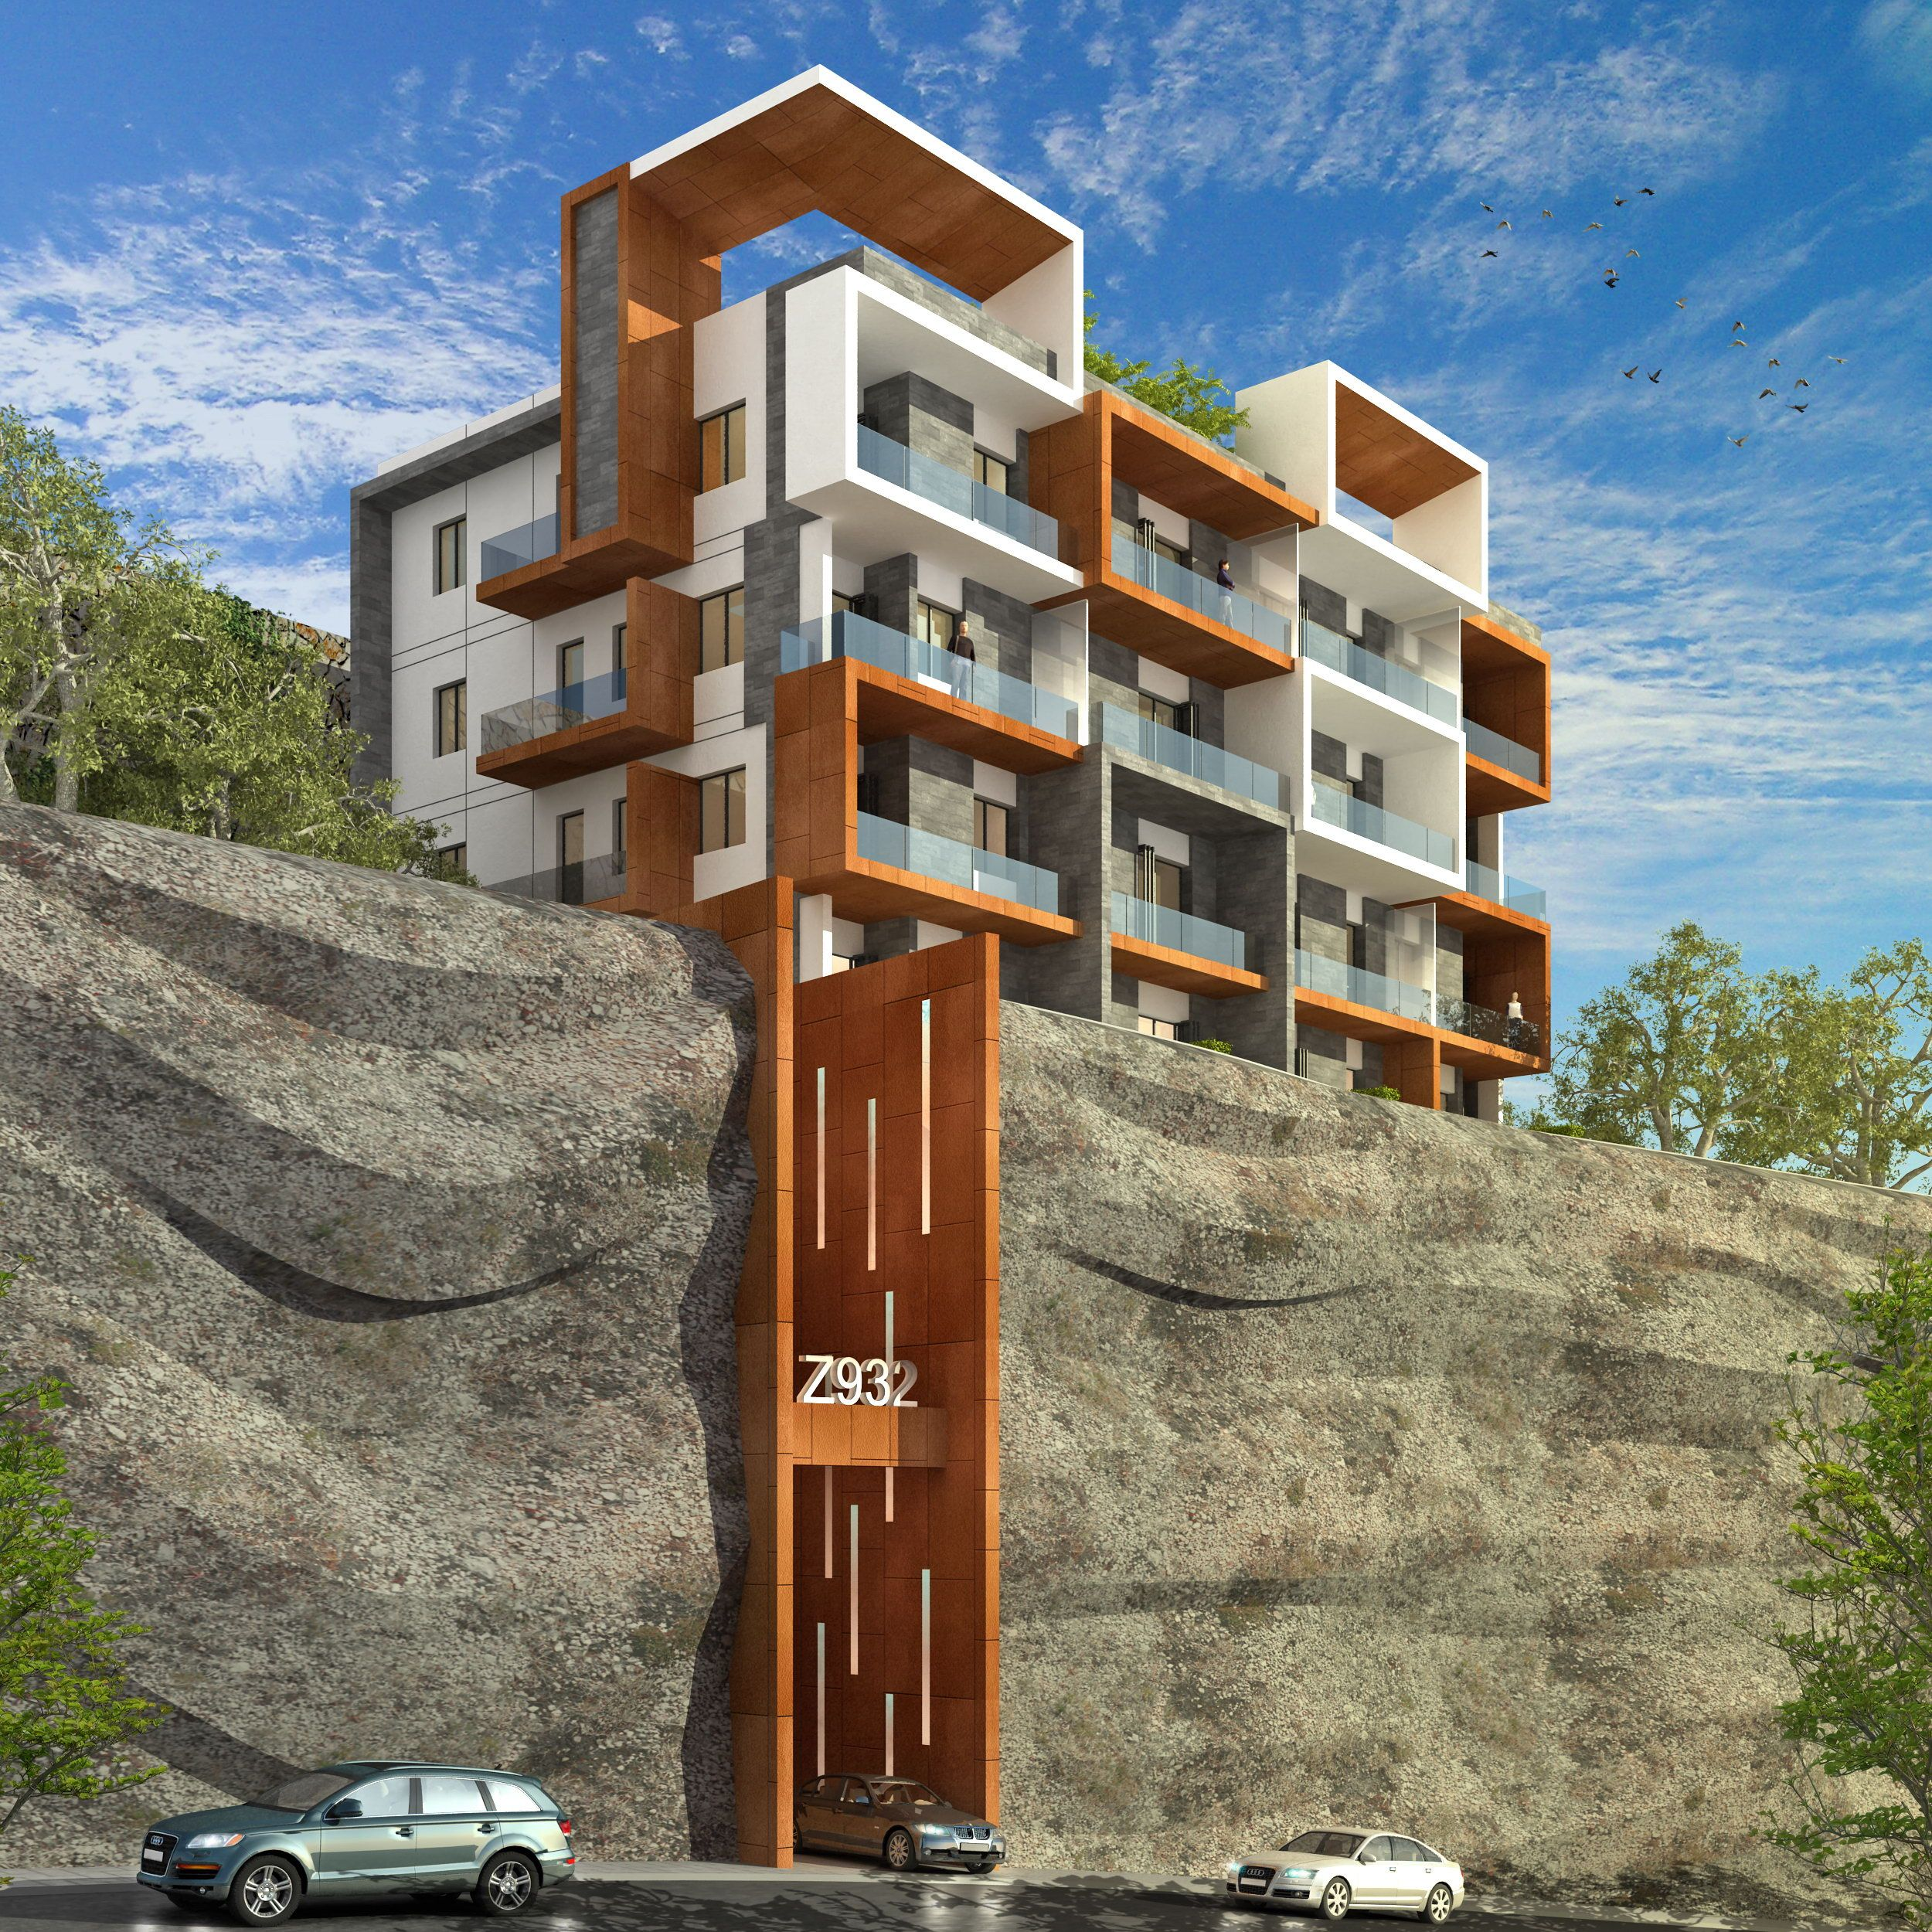 This Project Is Located On A Steep Hill In The Zalka Area A